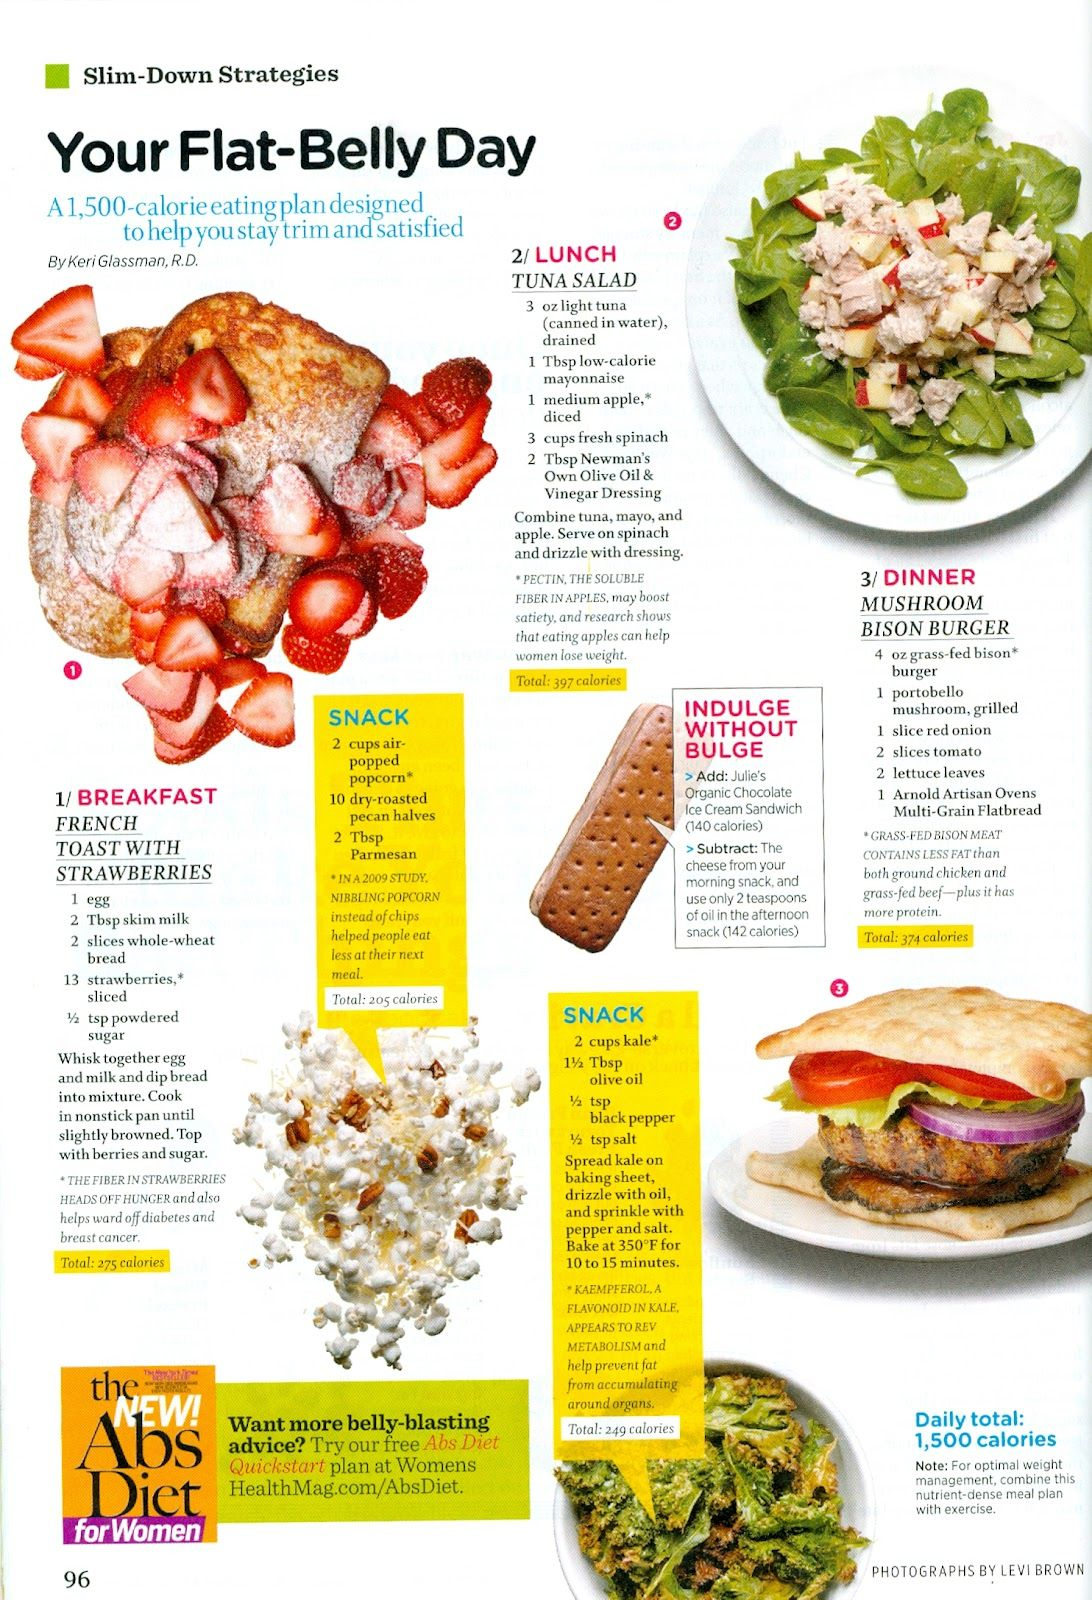 FlatBelly Eating Plan (With images) Flat belly foods